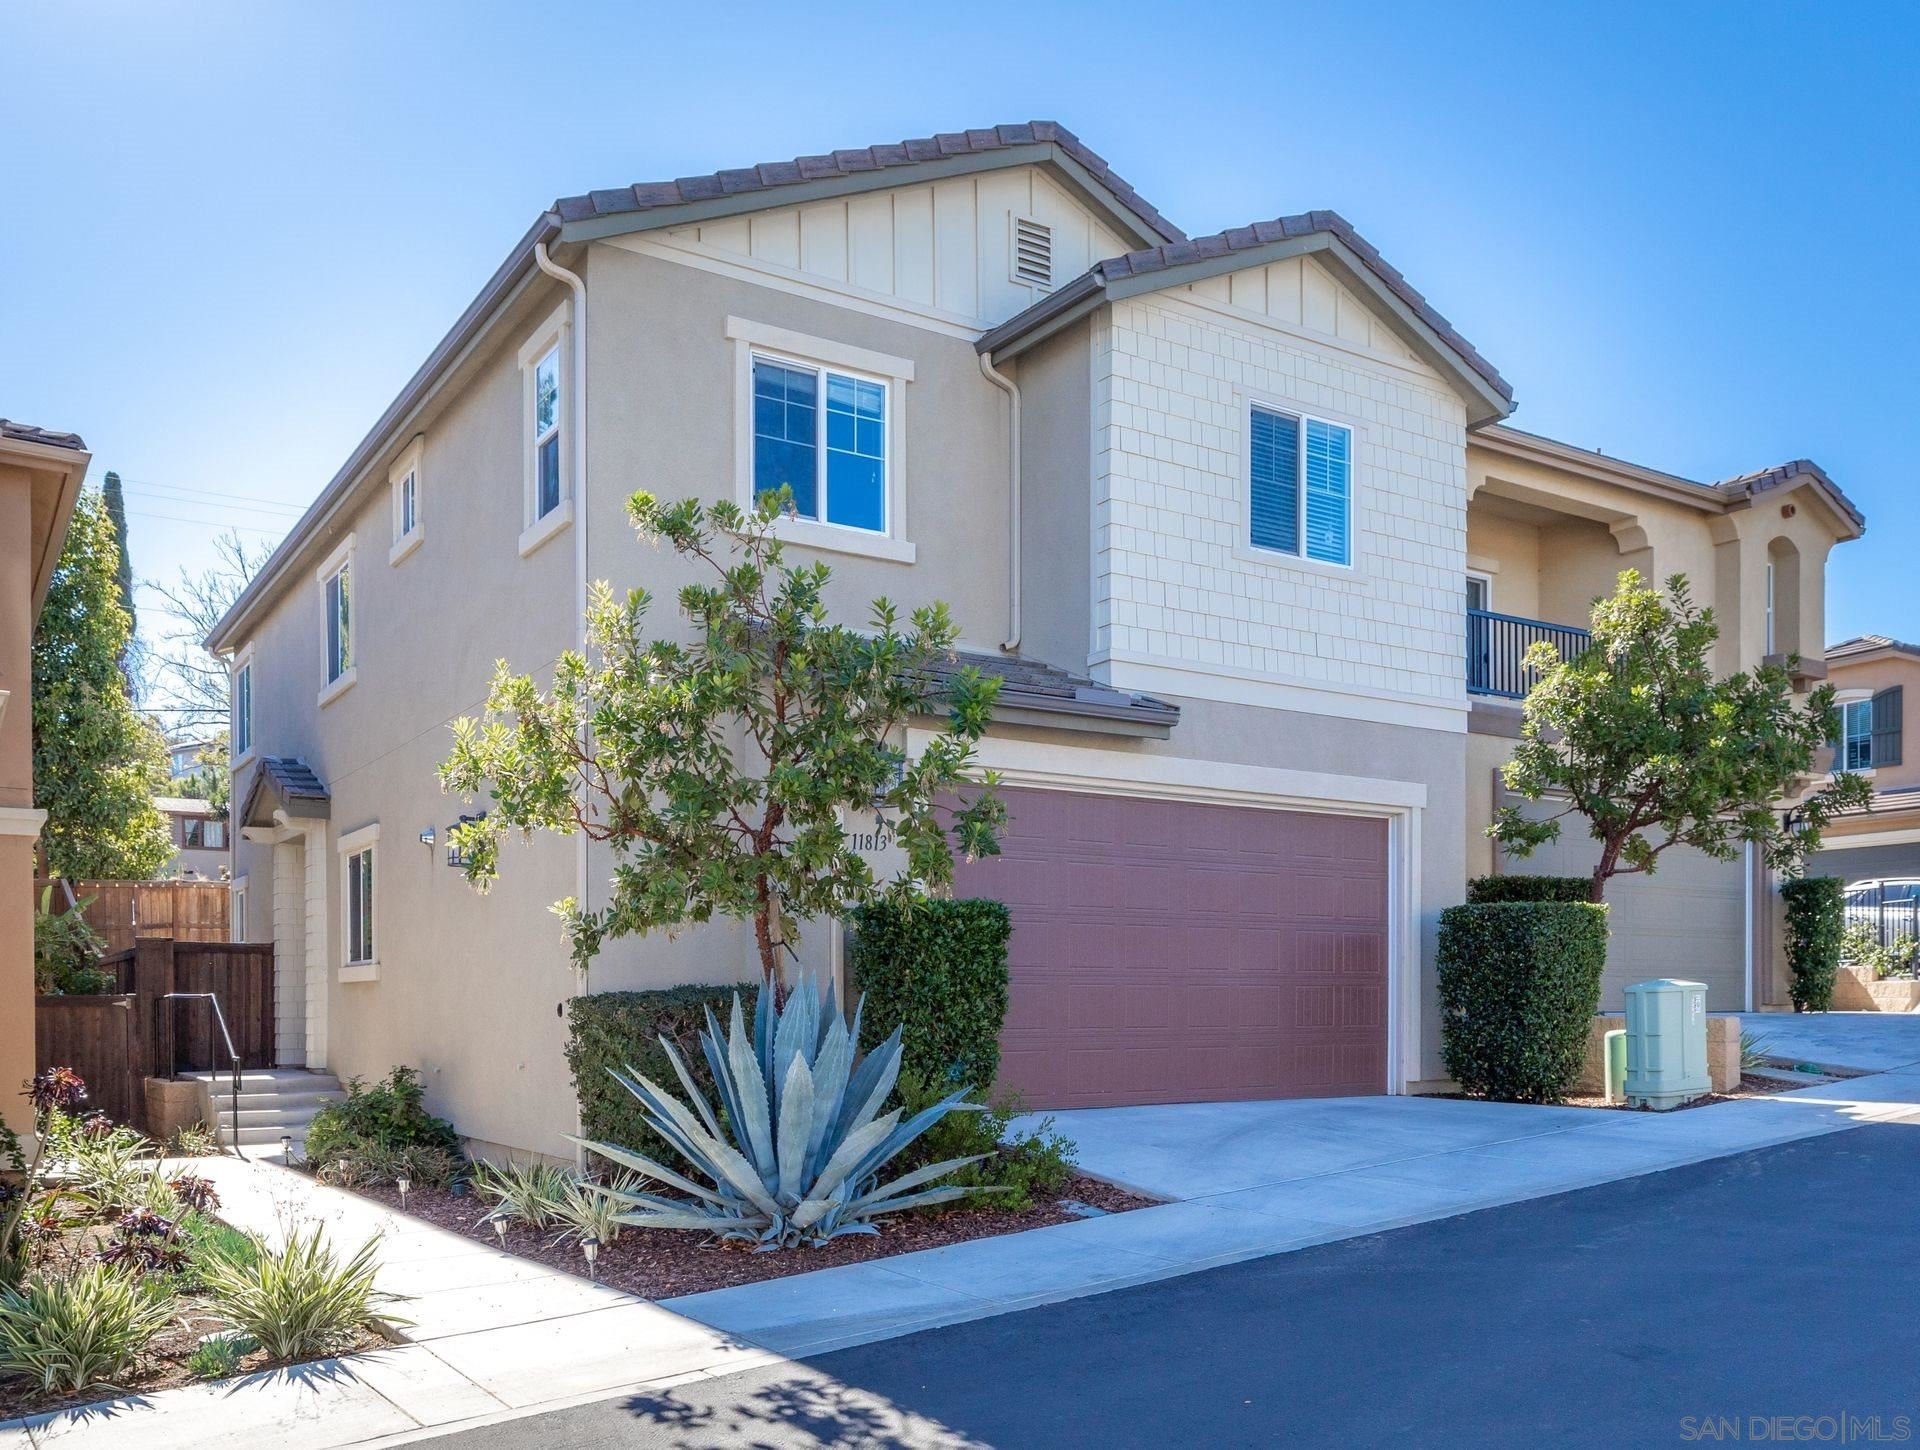 Photo of 11813 Caminito Rihely, Lakeside, CA 92040 (MLS # 200052159)